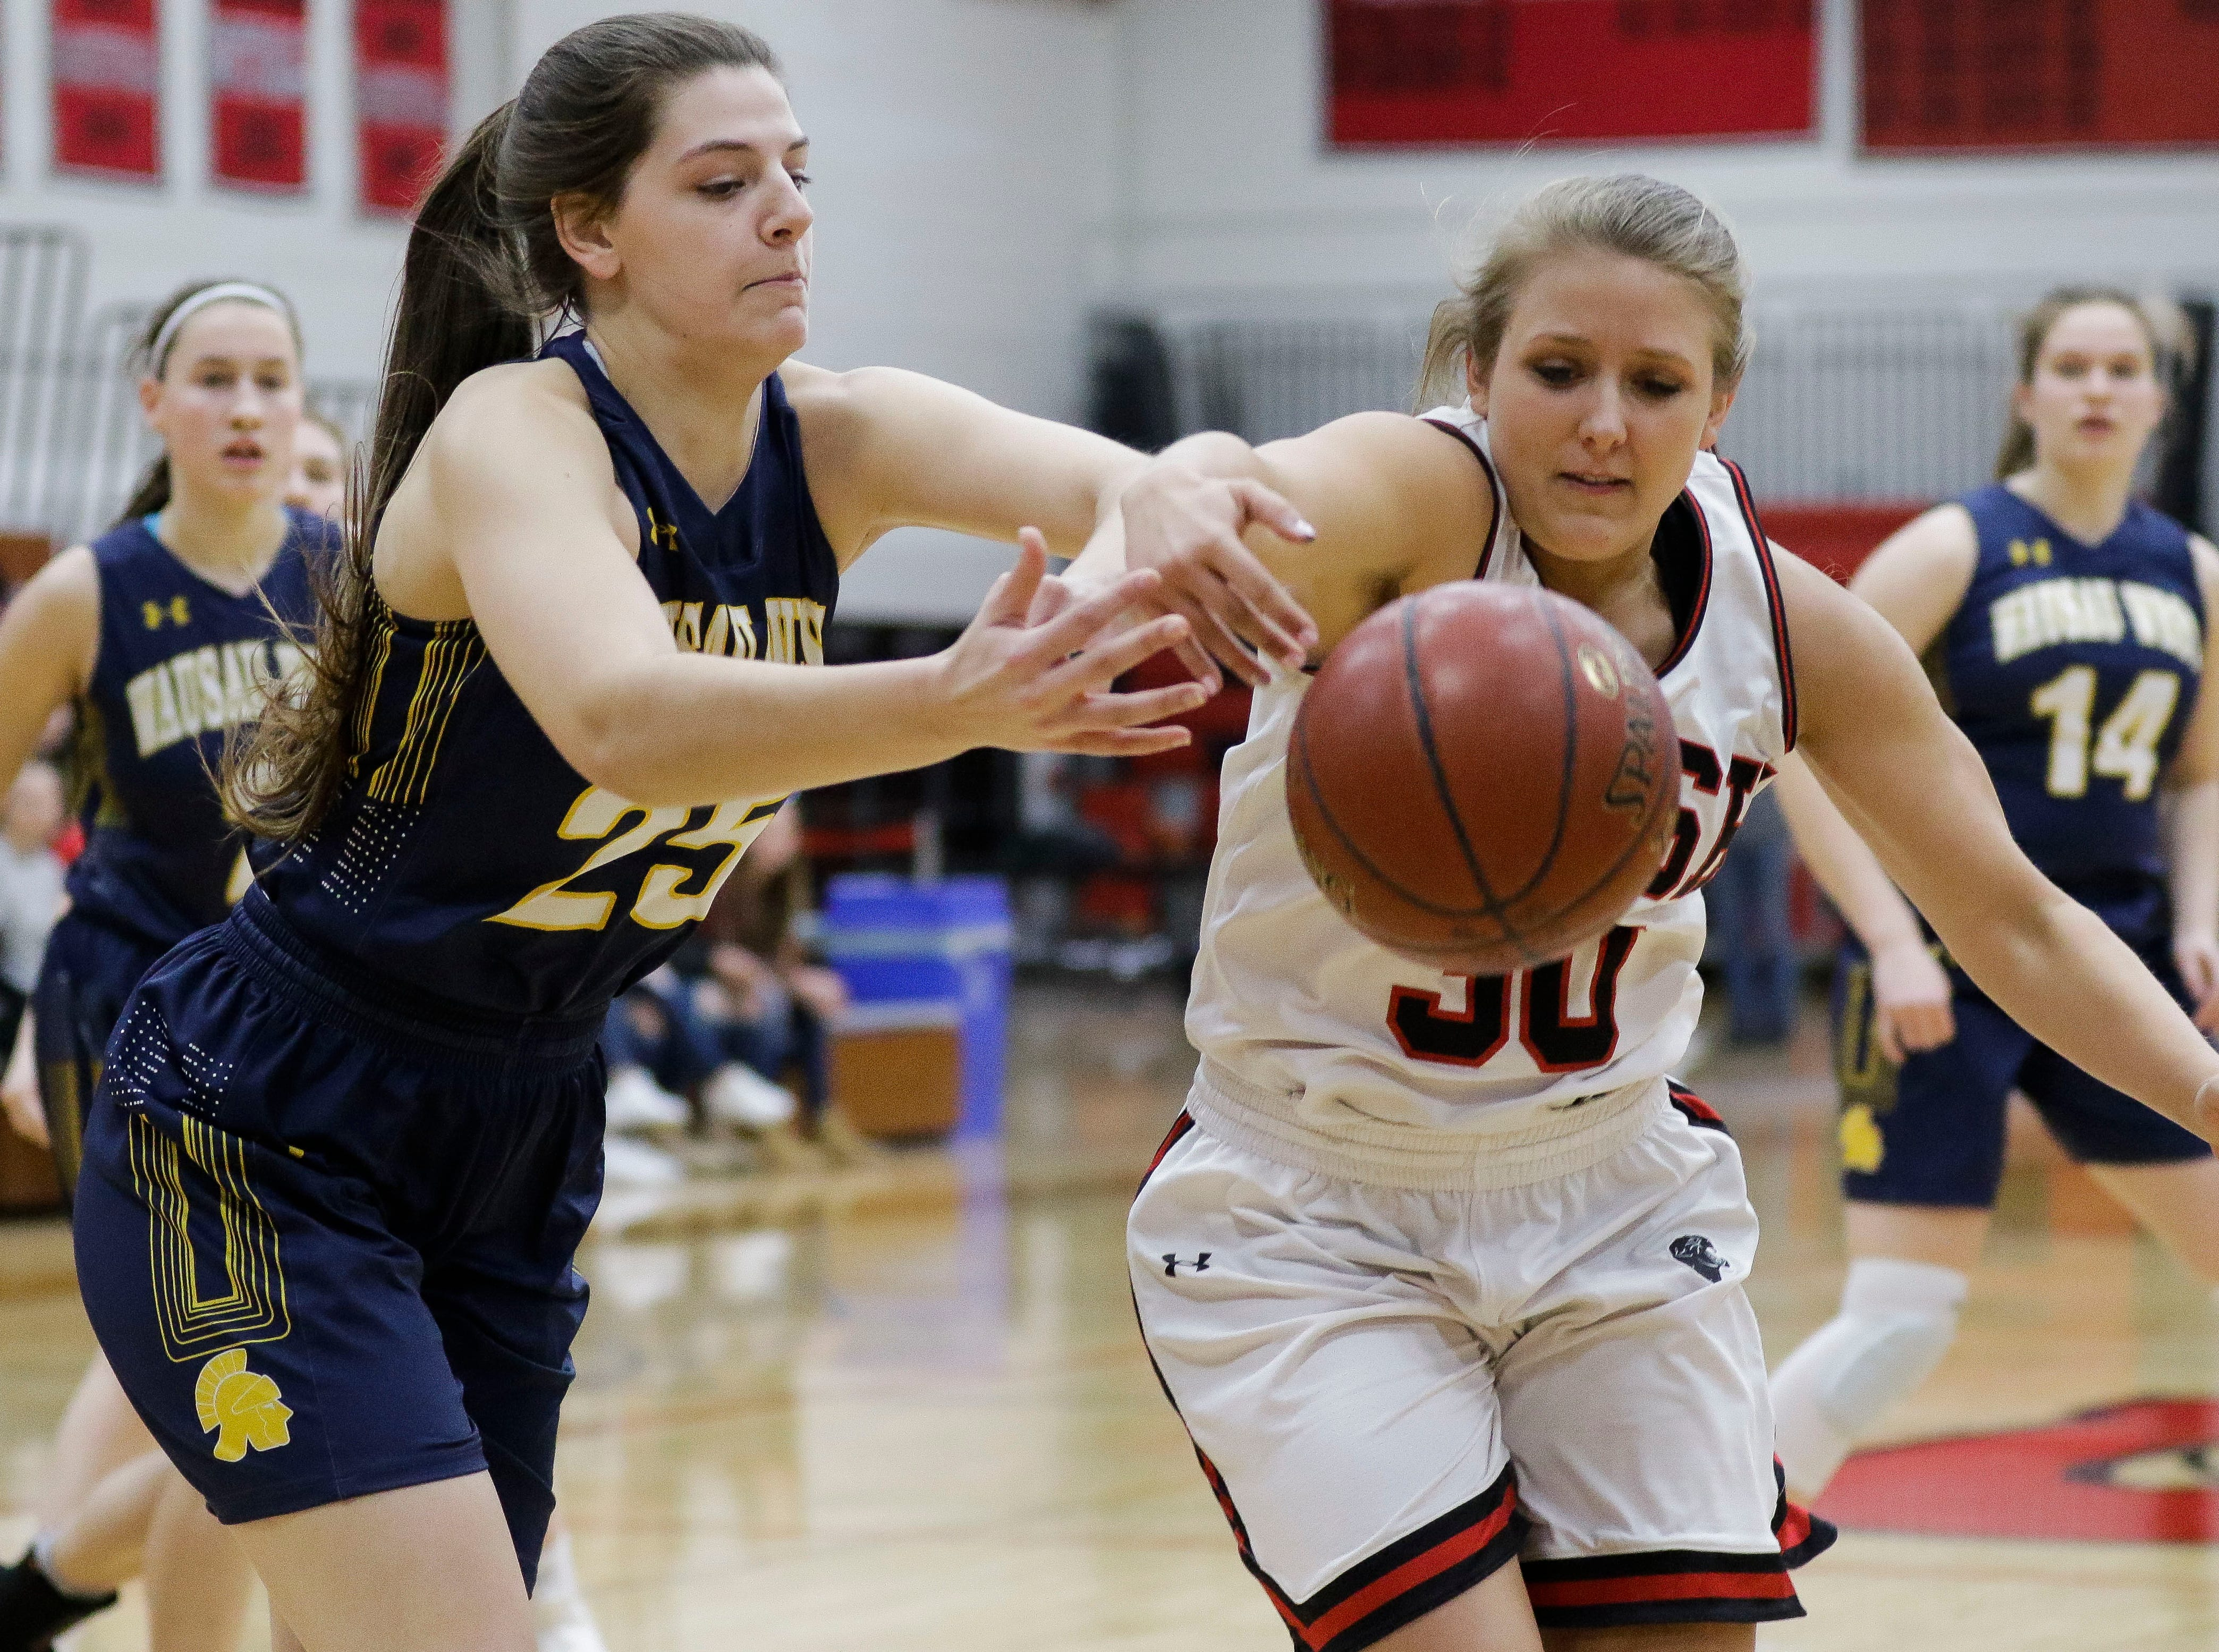 Wausau West's Tess Hauer (25) and SPASH's Kaylee Hintz (30) chase down a loose ball on Thursday, February 14, 2019, at SPASH in Stevens Point, Wis.Tork Mason/USA TODAY NETWORK-Wisconsin